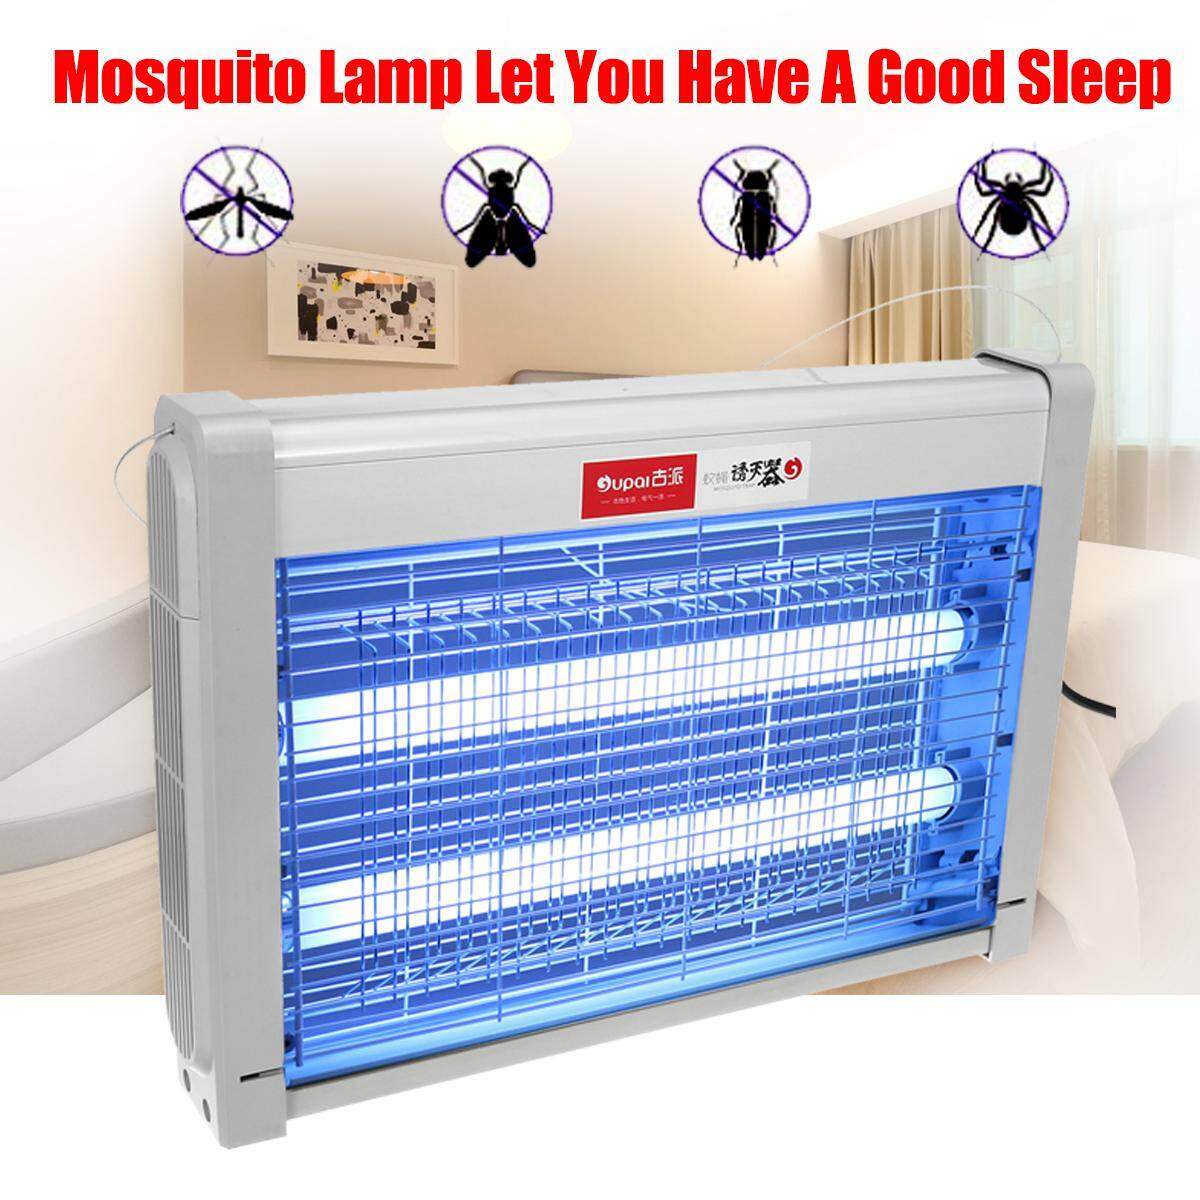 220V 20W Insect Killer Electric Mosquito Fly Bug Insect Zapper Trap Catcher Lamp